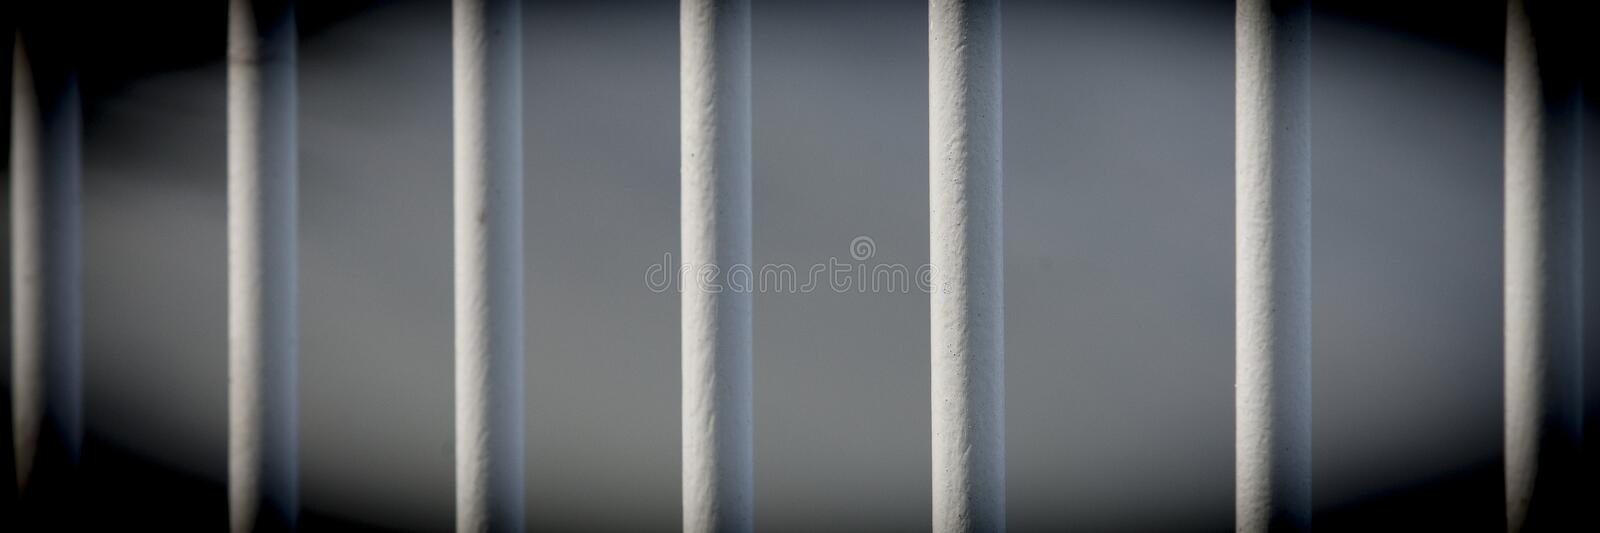 Iron bars, prisoners behind are locked up. Safety first, prison iron bars keep burglars in the cell royalty free stock photos